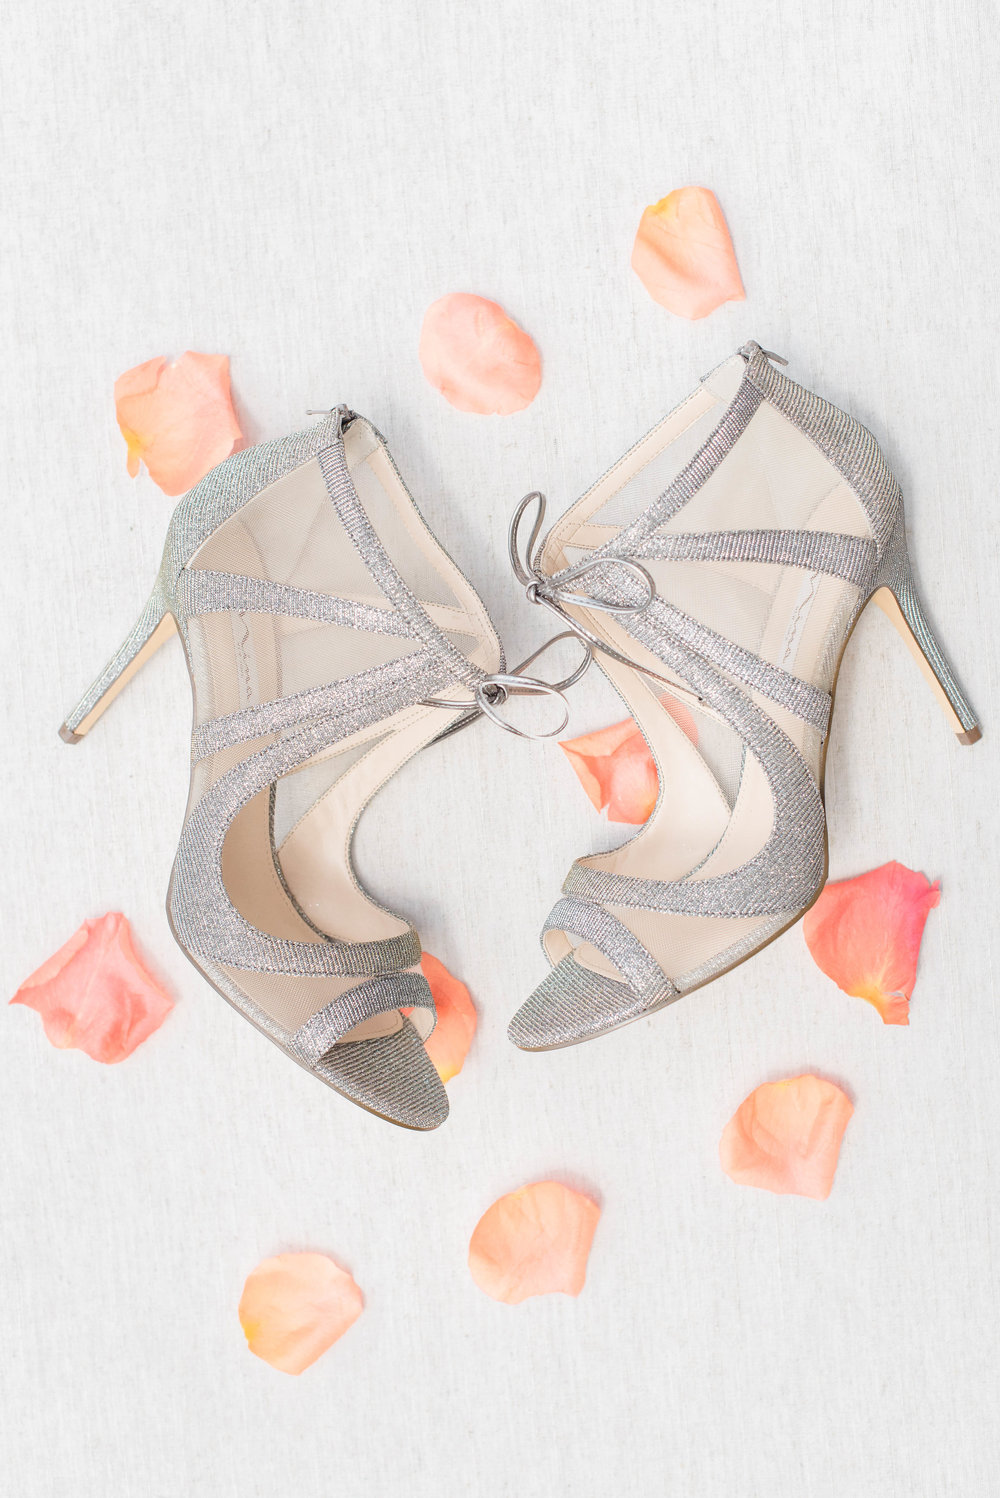 Bridal shoes with rose petals // Nashville Wedding Floral Design